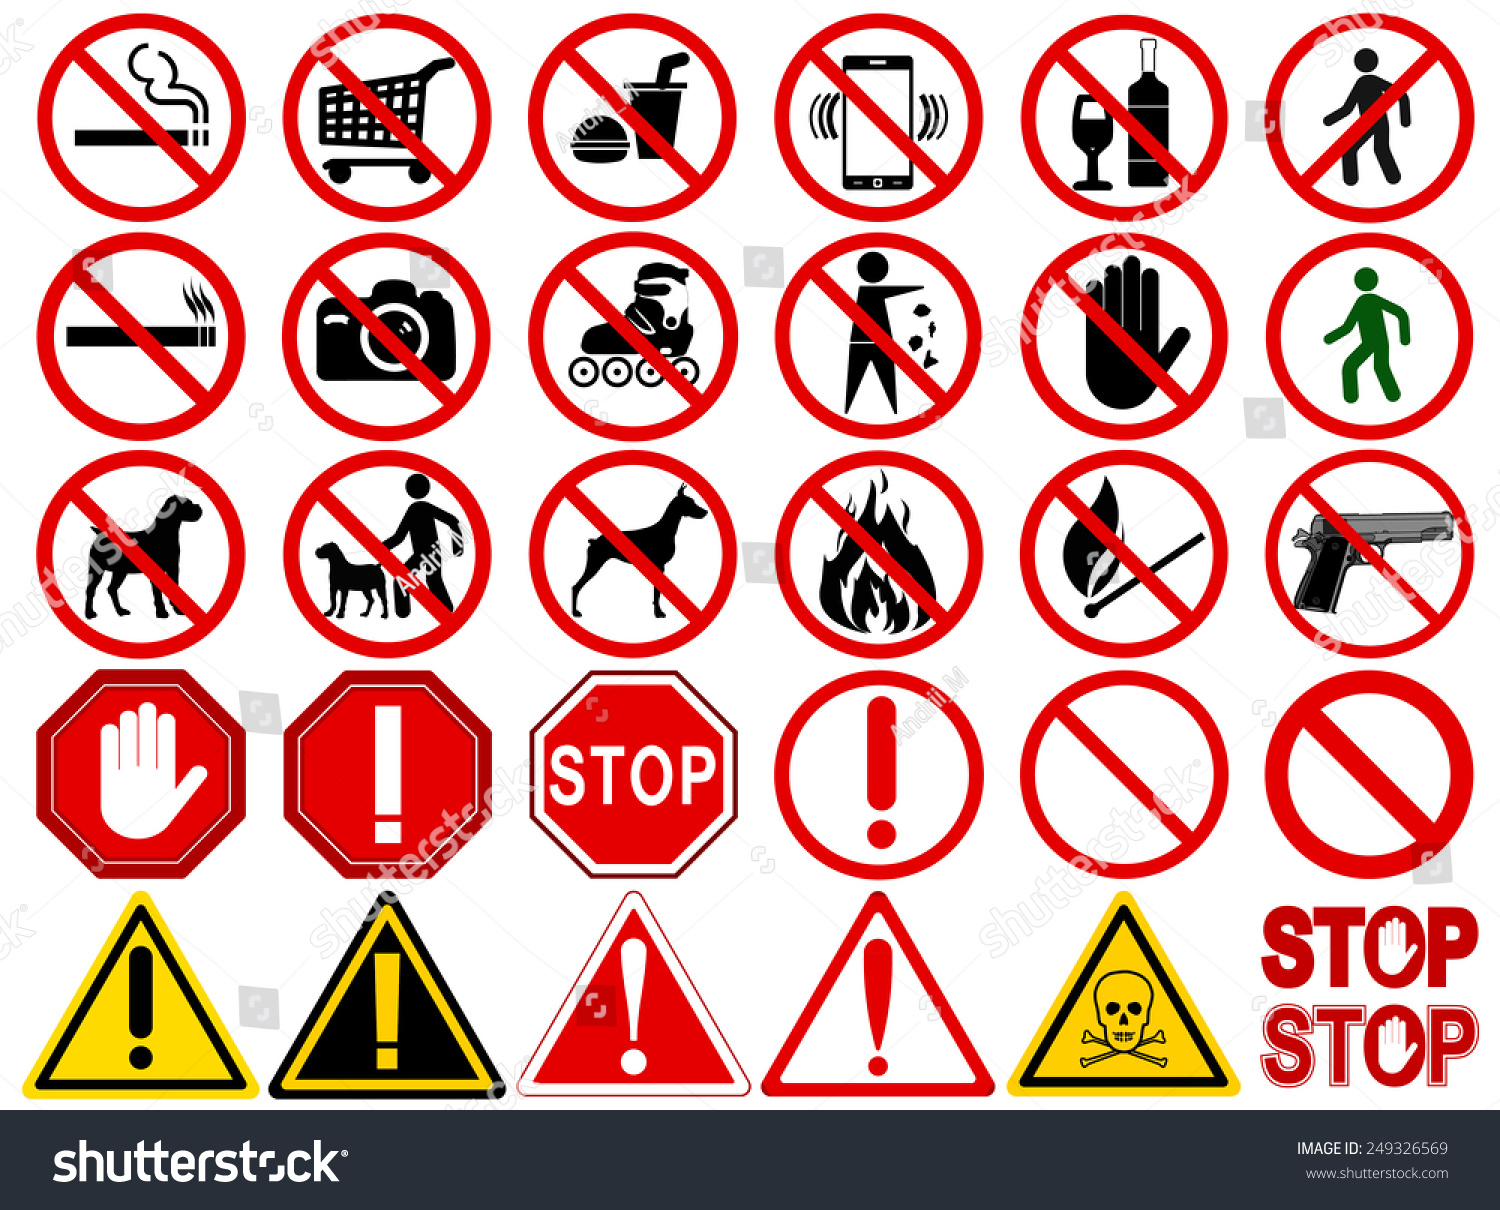 Set of Signs for Different Prohibited Activities. quot;Noquot; signs, No